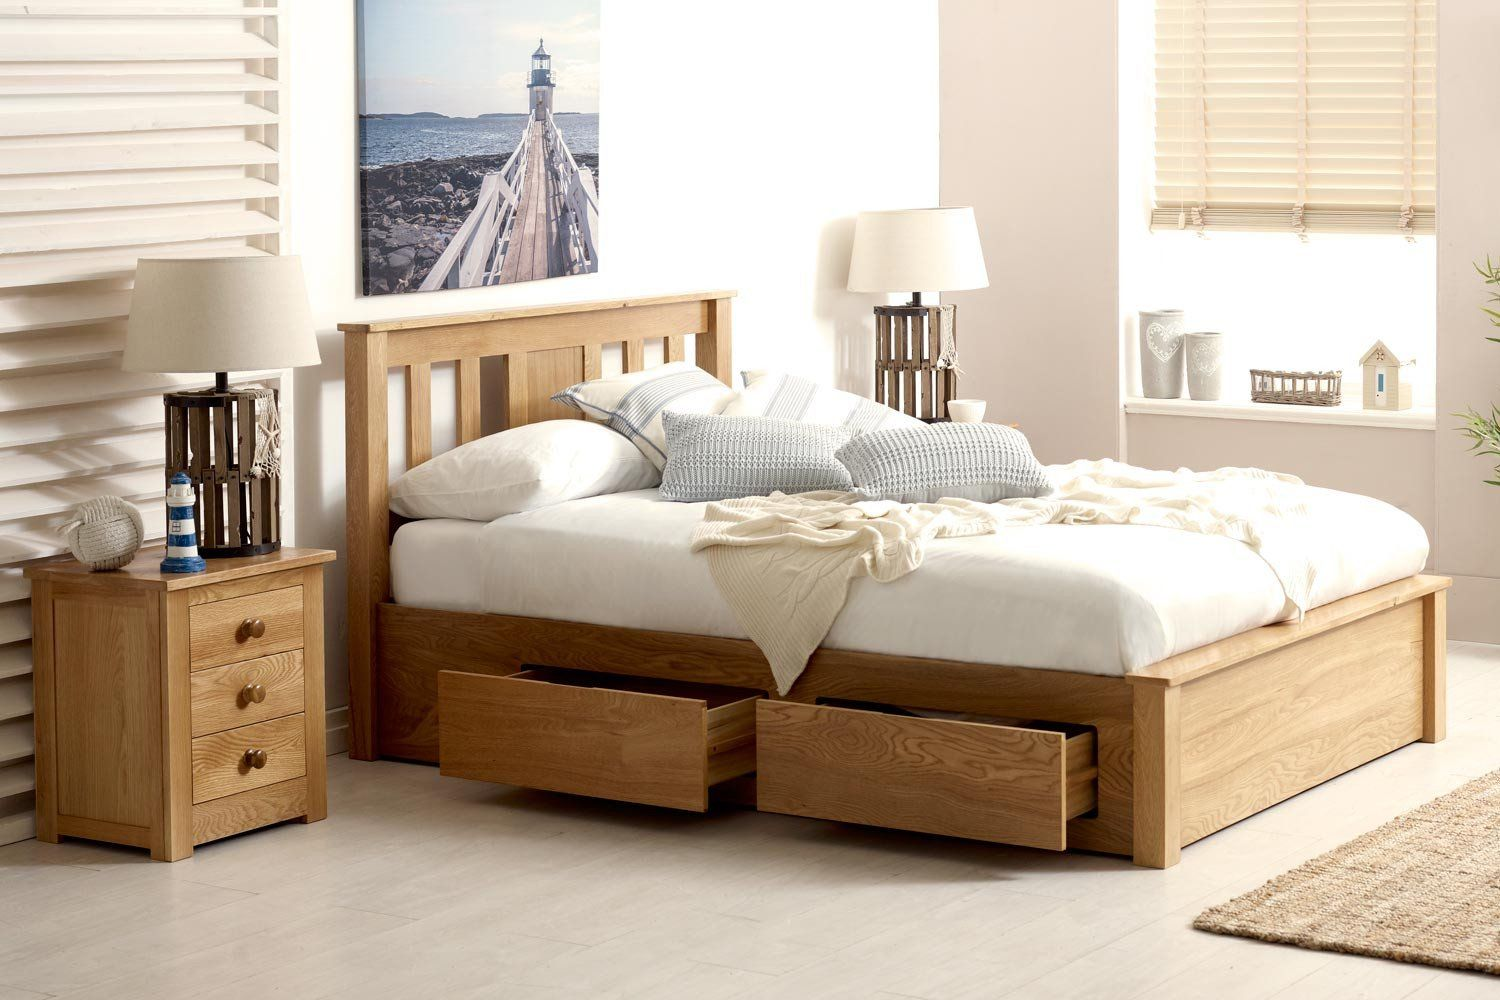 Wimbledon Solid Oak Storage Bed 5ft King Size Bed Frame With